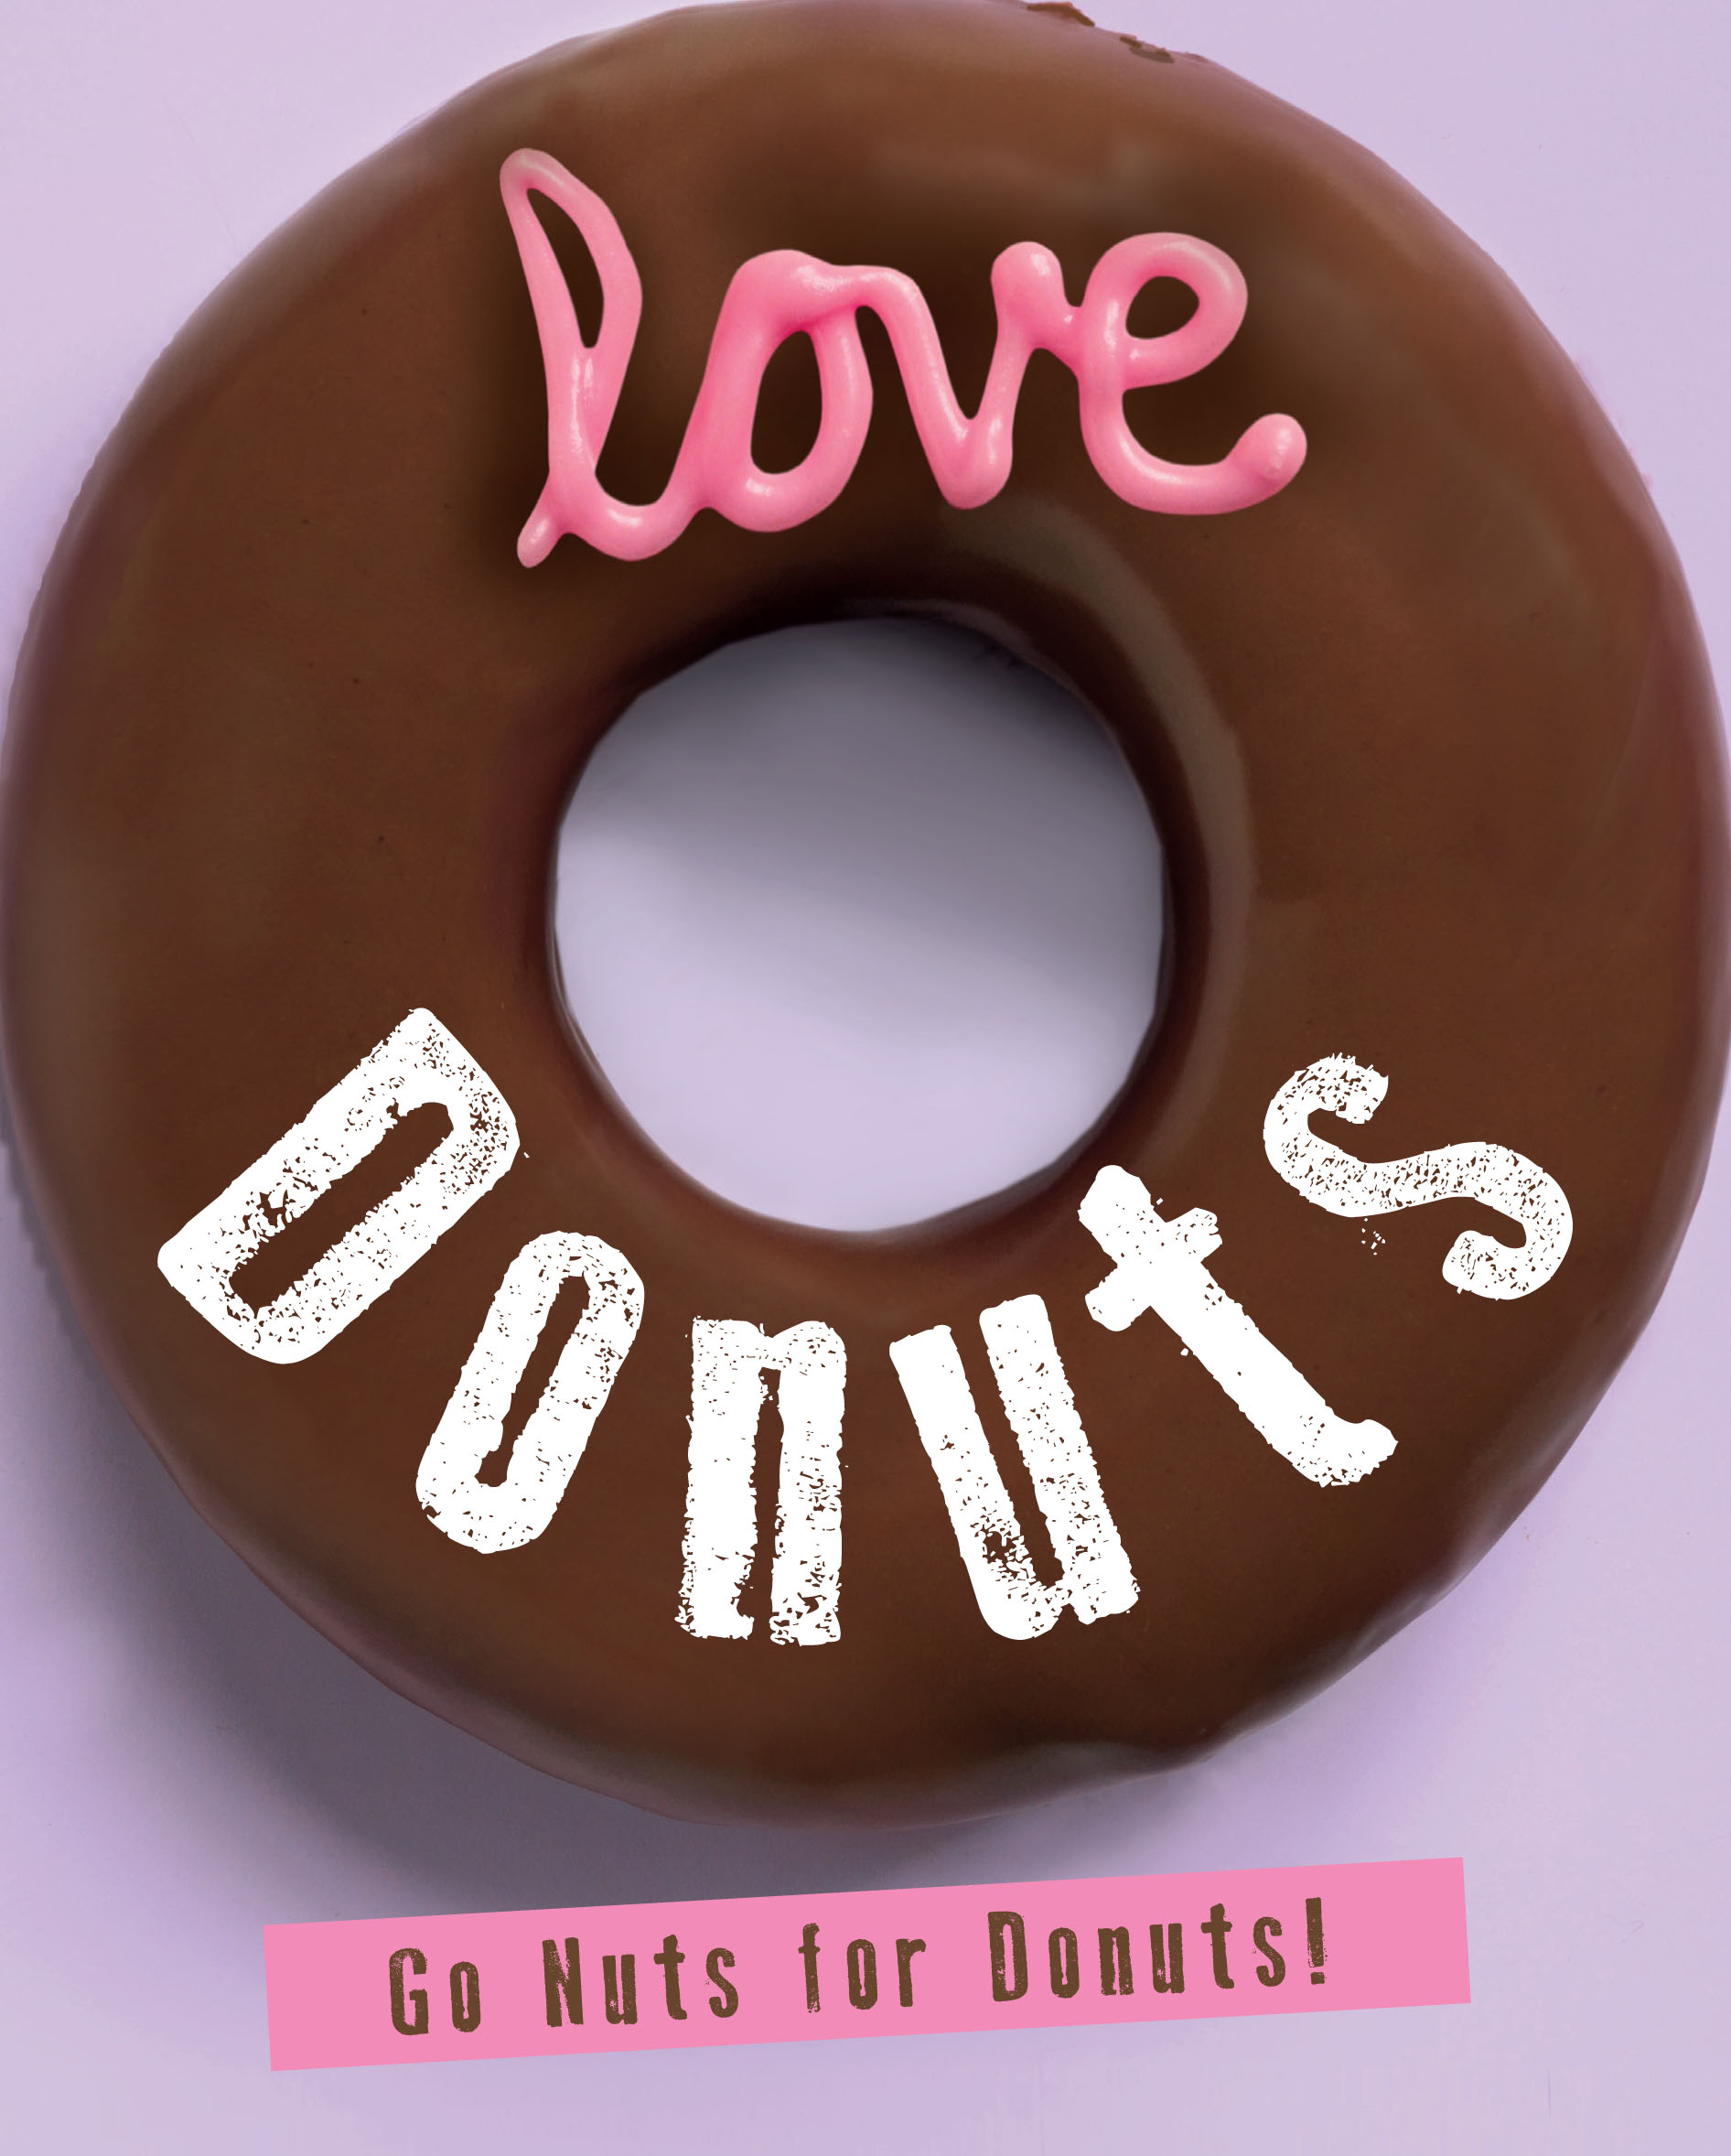 Love Donuts (Love Food)